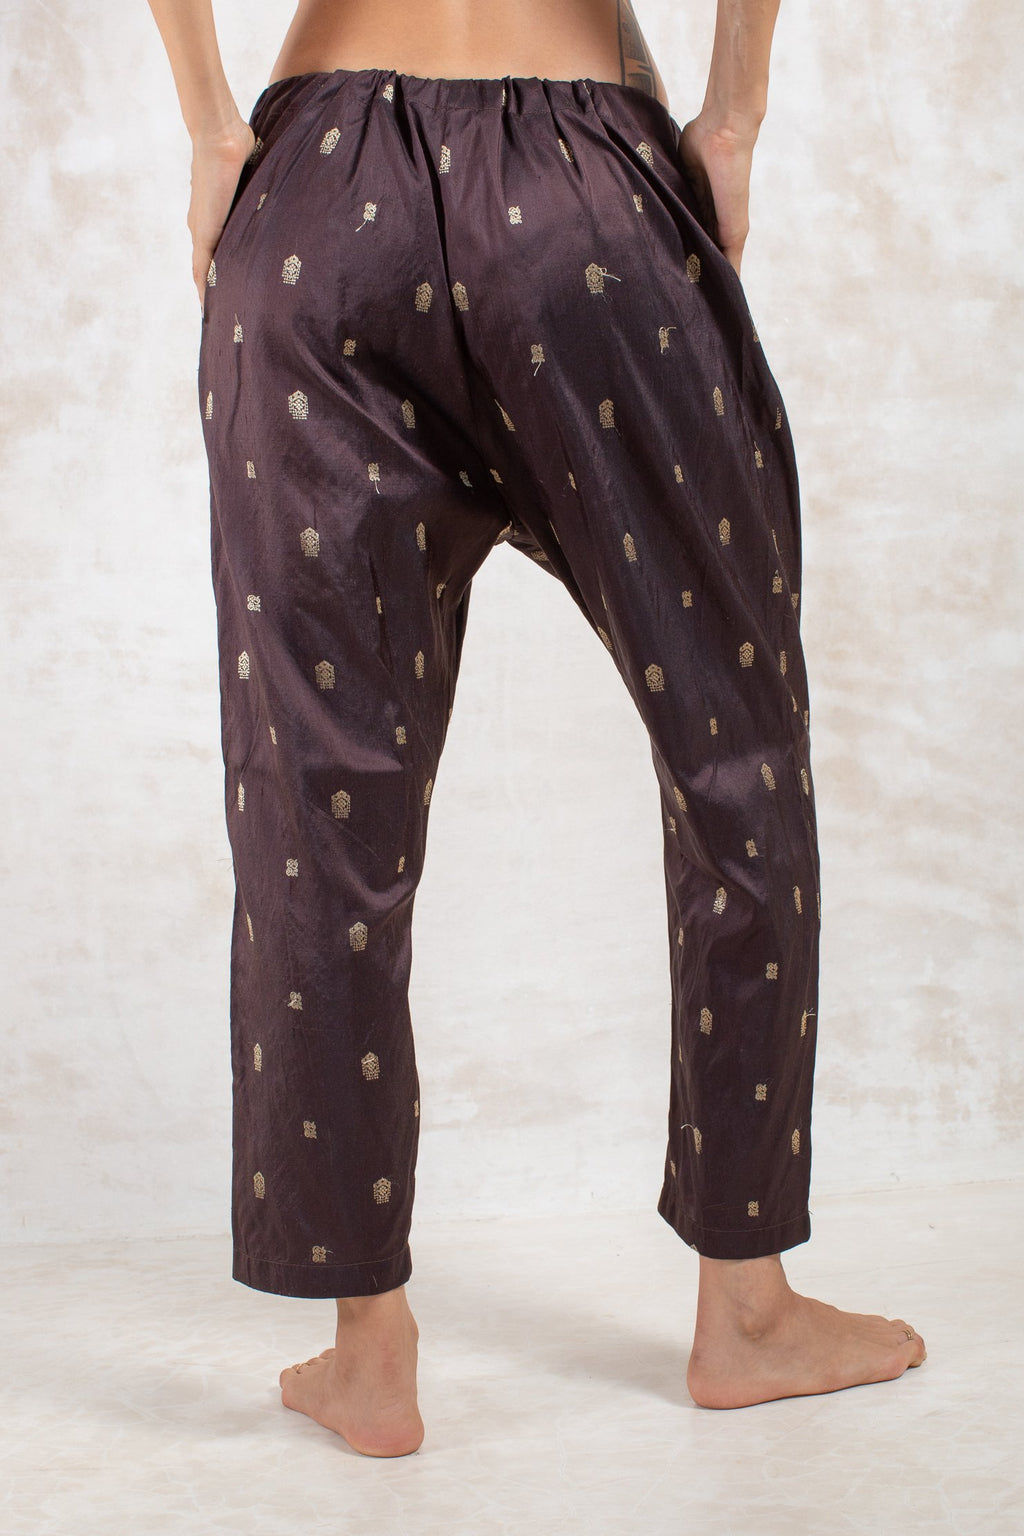 Ranee Silk Love Pants